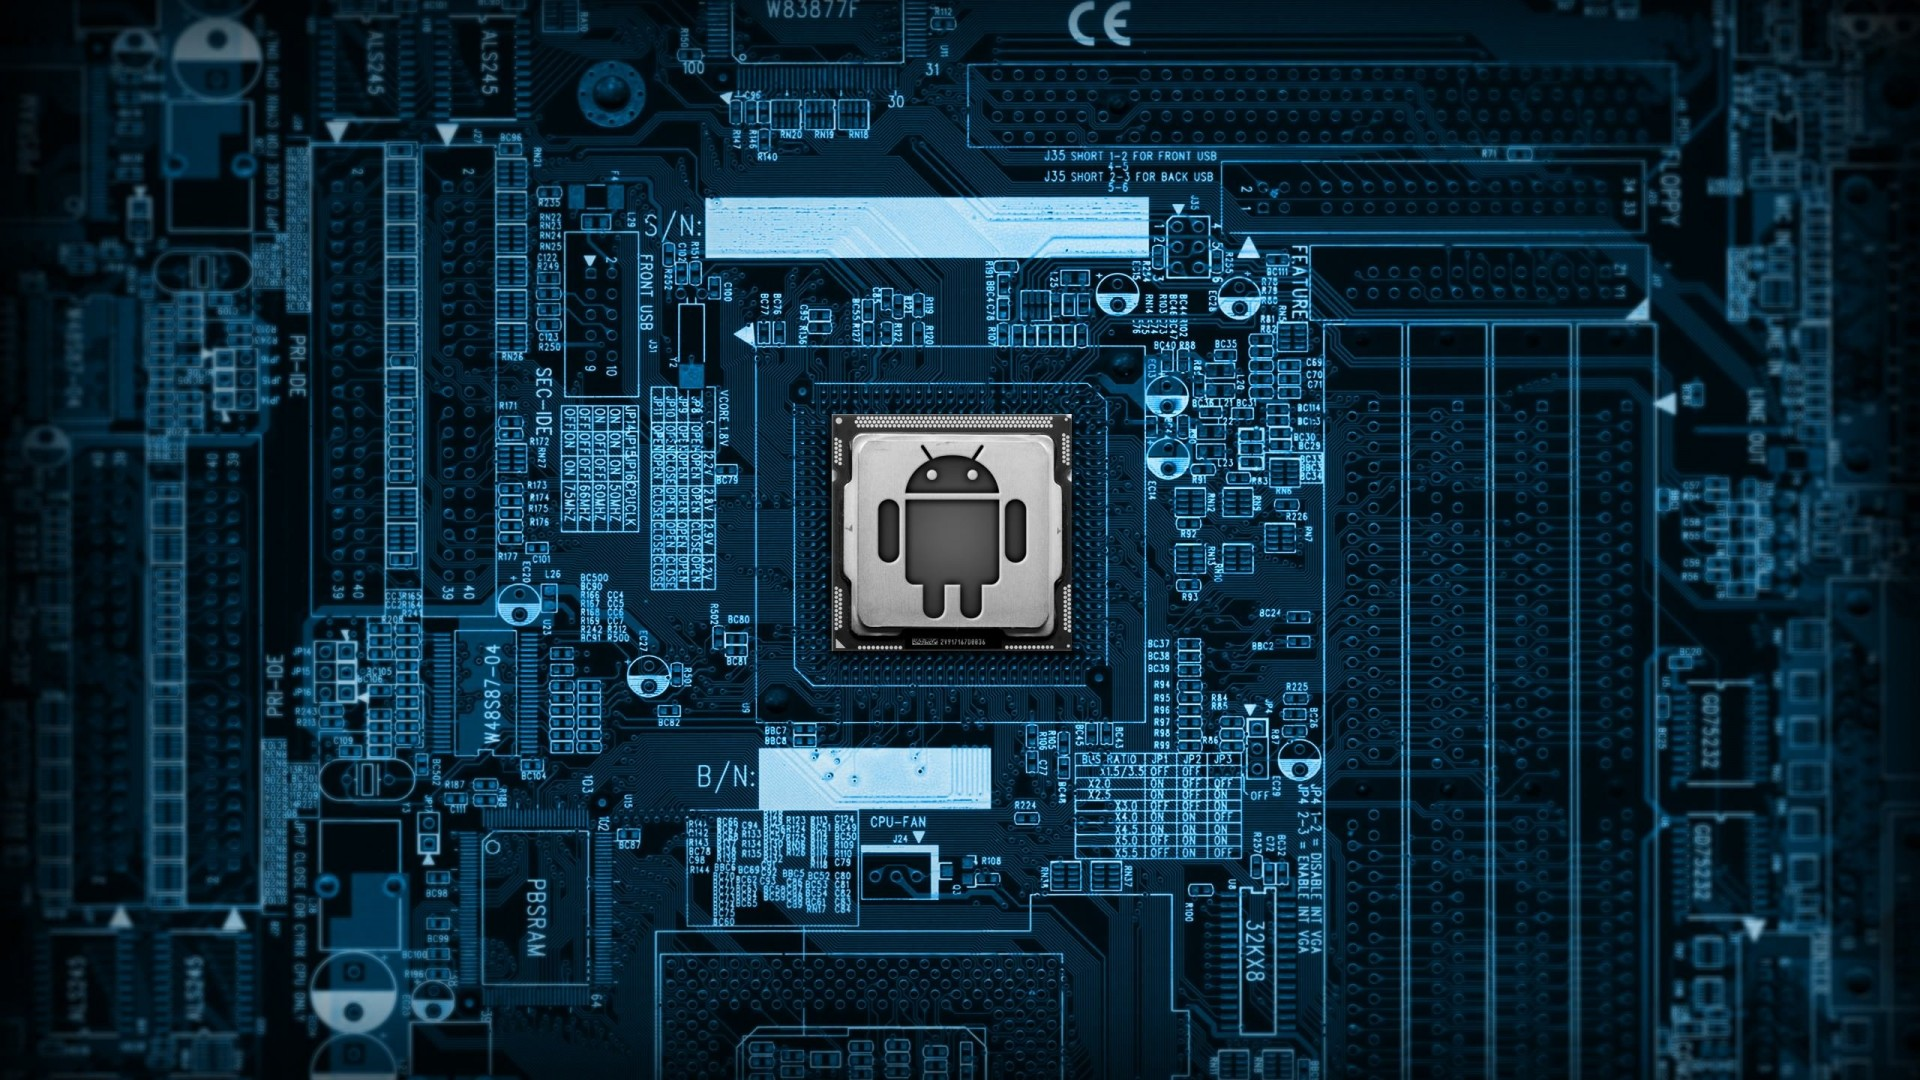 Android Logic Board Wallpaper for Desktop 1920x1080